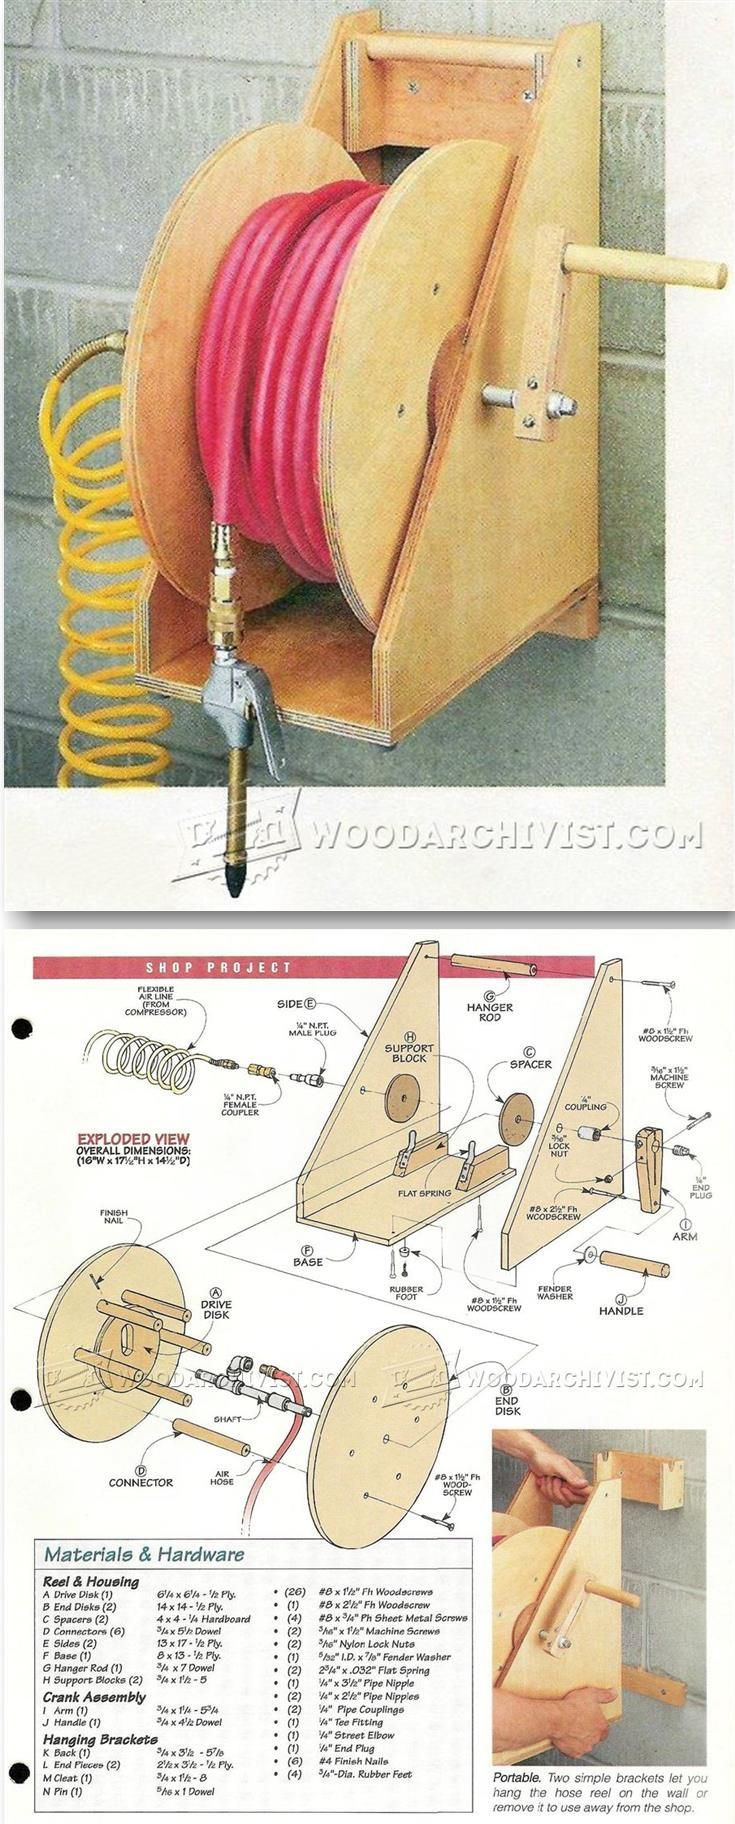 Portable Hose Reel - Workshop Solutions Plans, Tips and Tricks | WoodArchivist.com